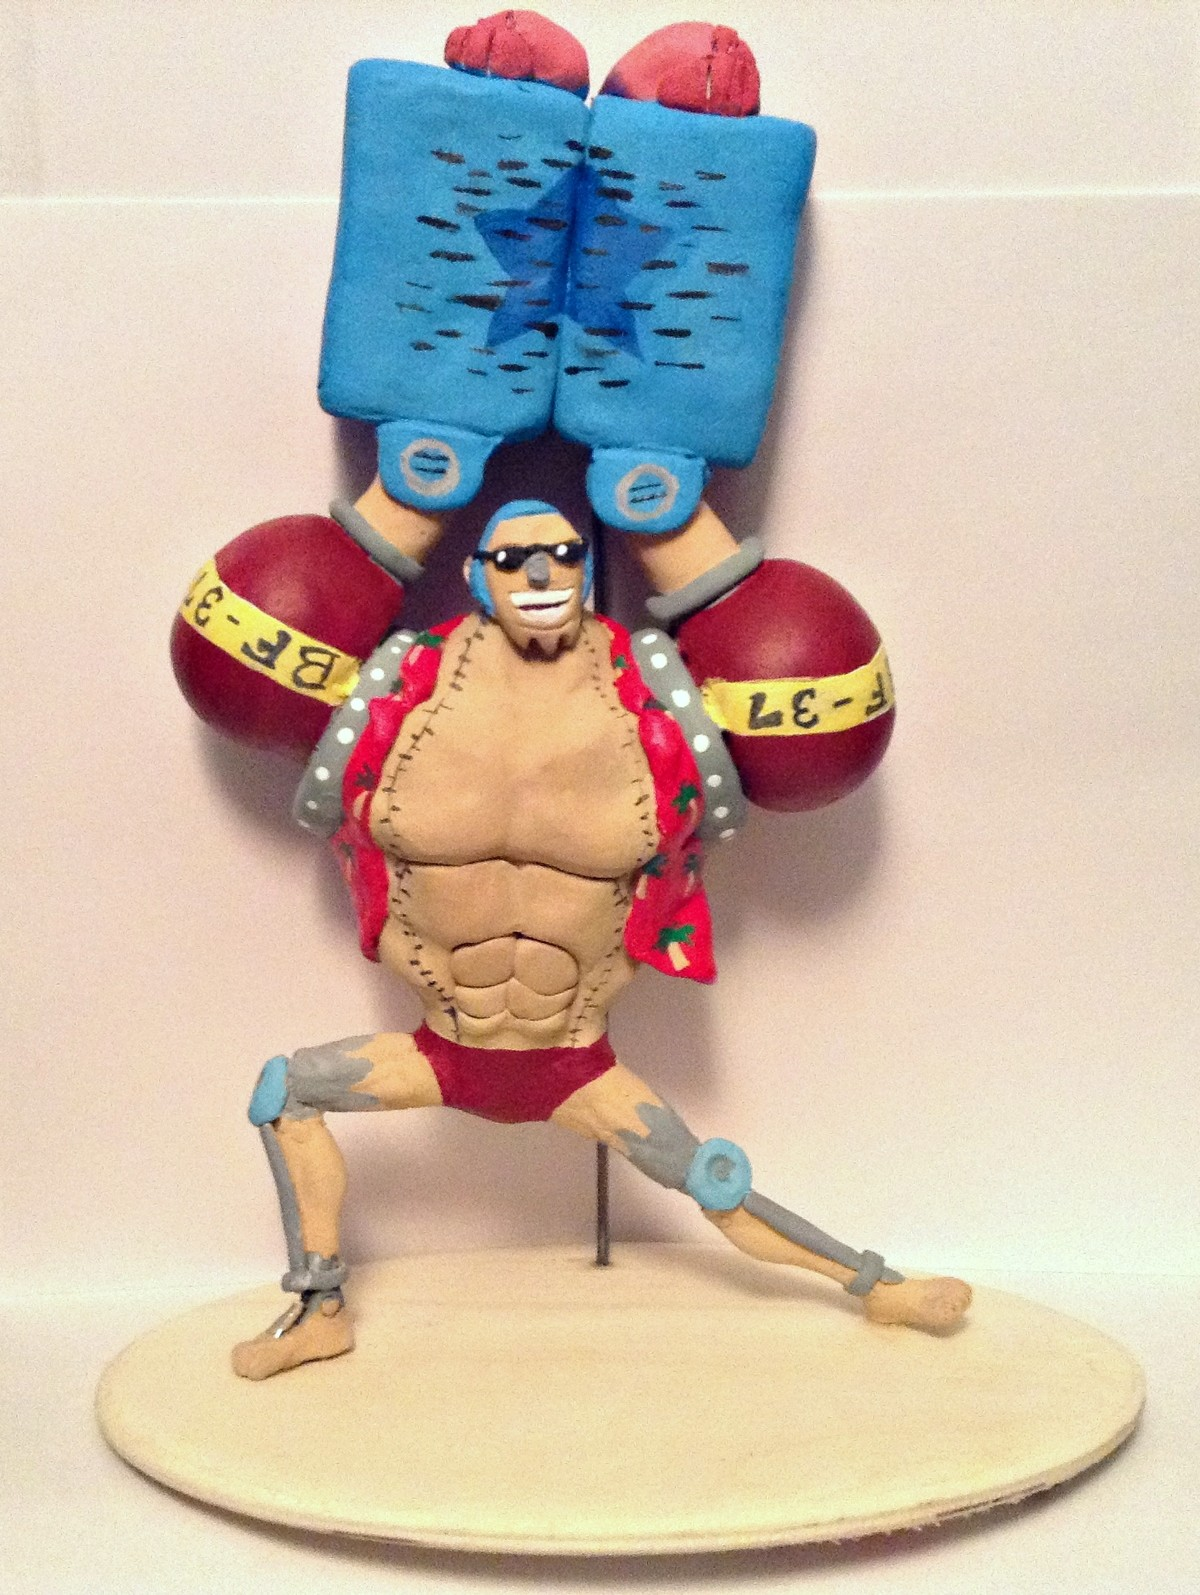 SUPER Franky Statue. Hey everyone! Today I want to show off my new custom statue of franky from one piece. It uses legs from an old figure but everything else i